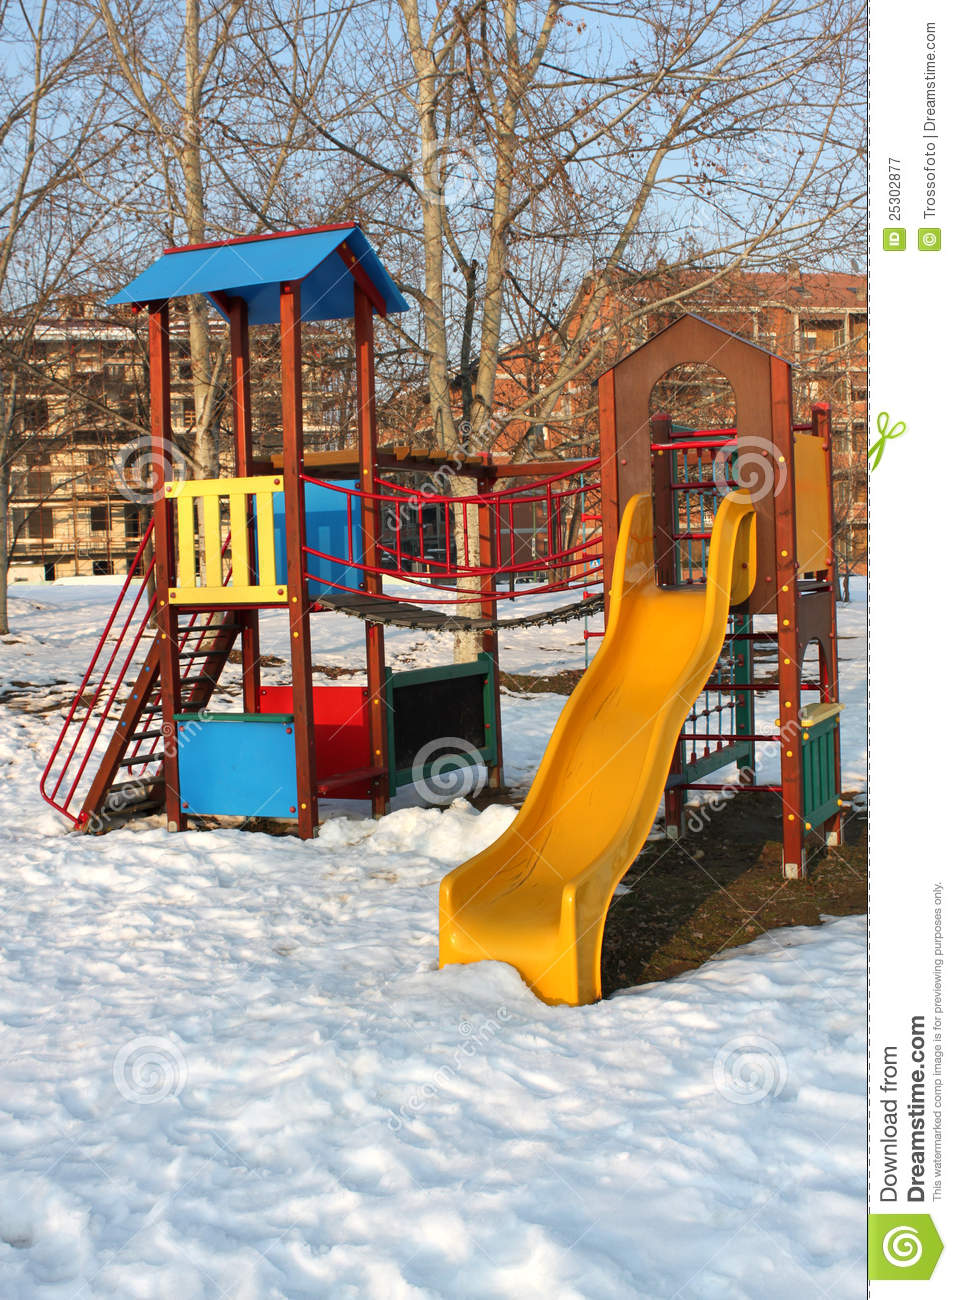 Playground Royalty Free Stock Photography - Image: 25302877